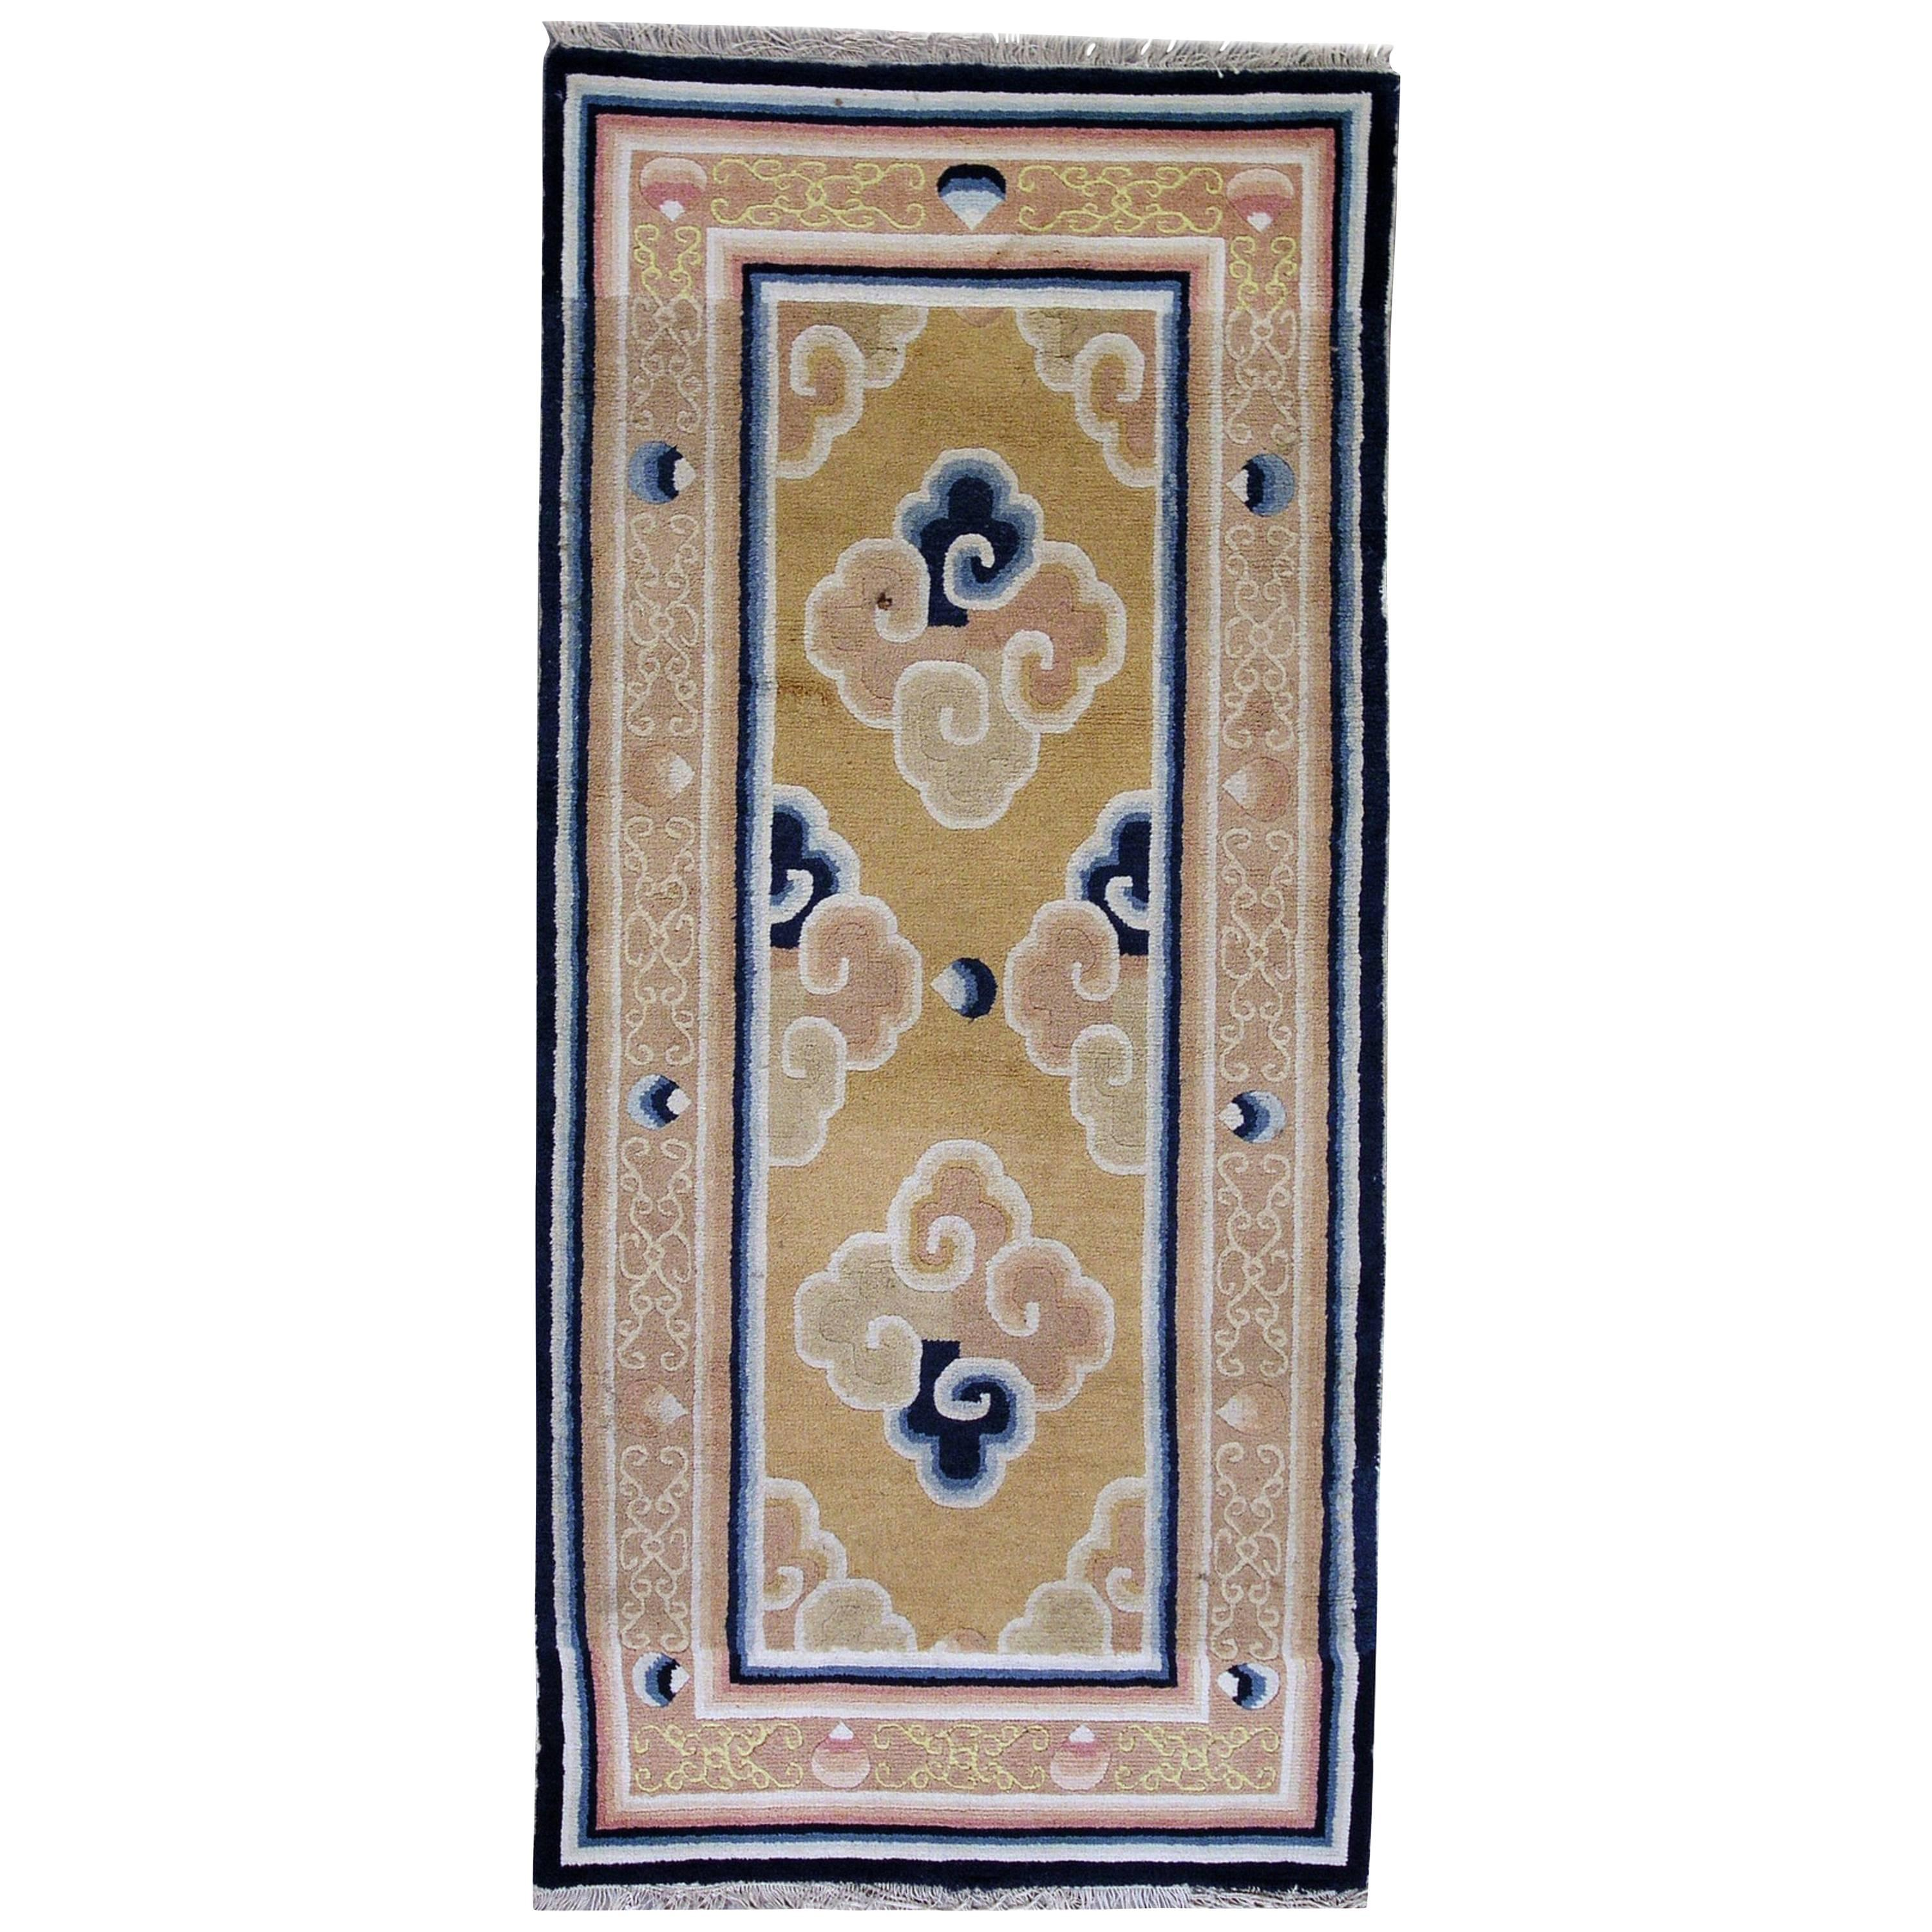 Handmade Antique Collectible Chinese Ningsha Rug, 1790s, 1L15